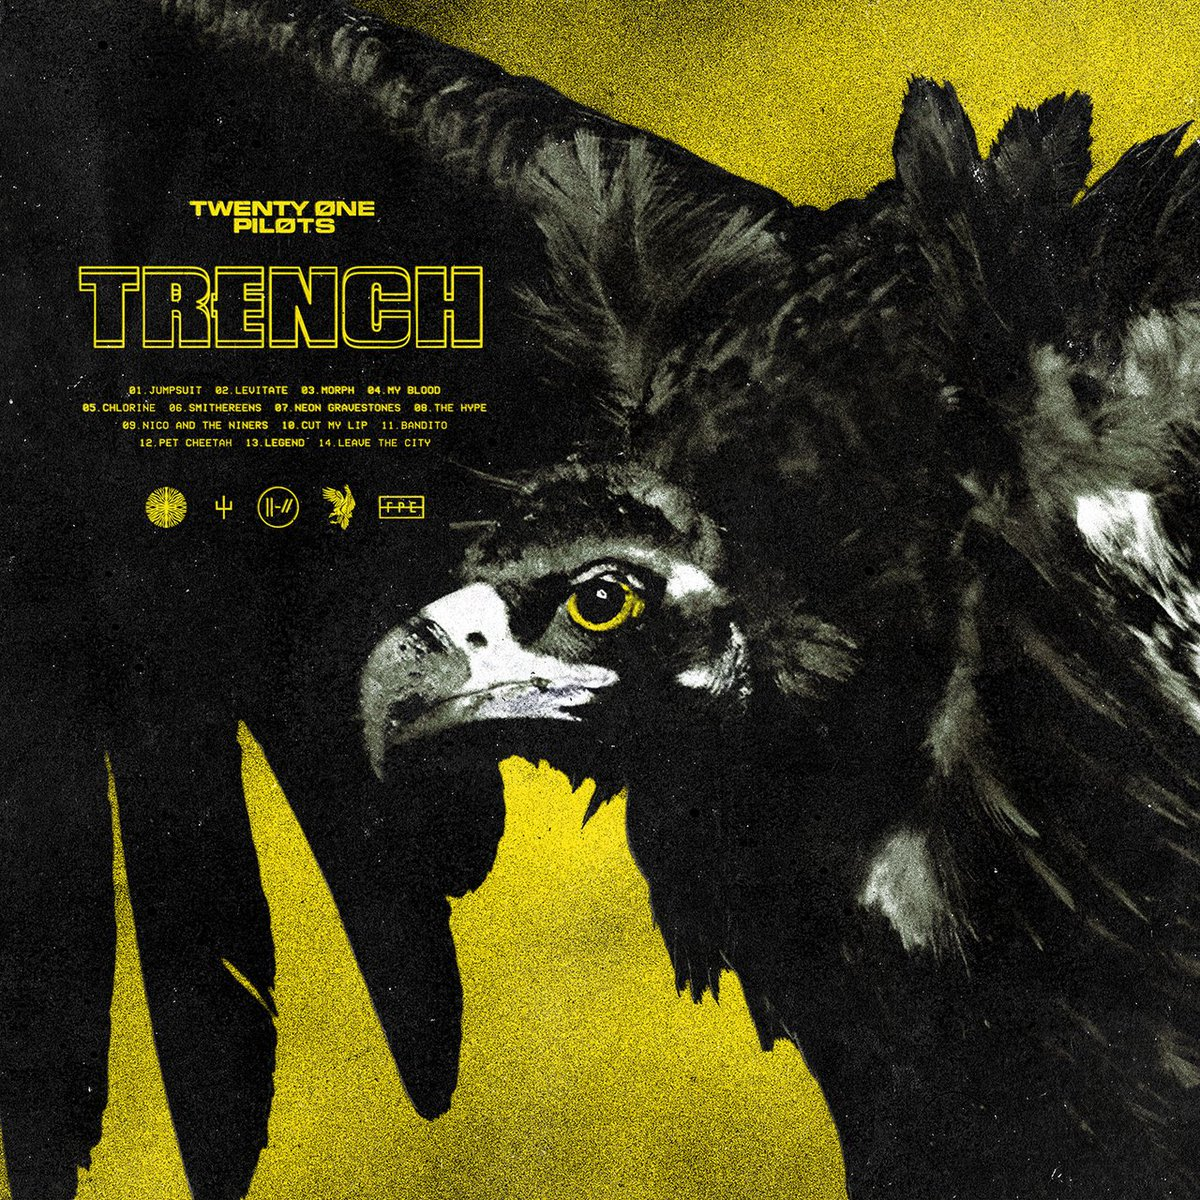 'Trench' is a step up for Twenty One Pilots